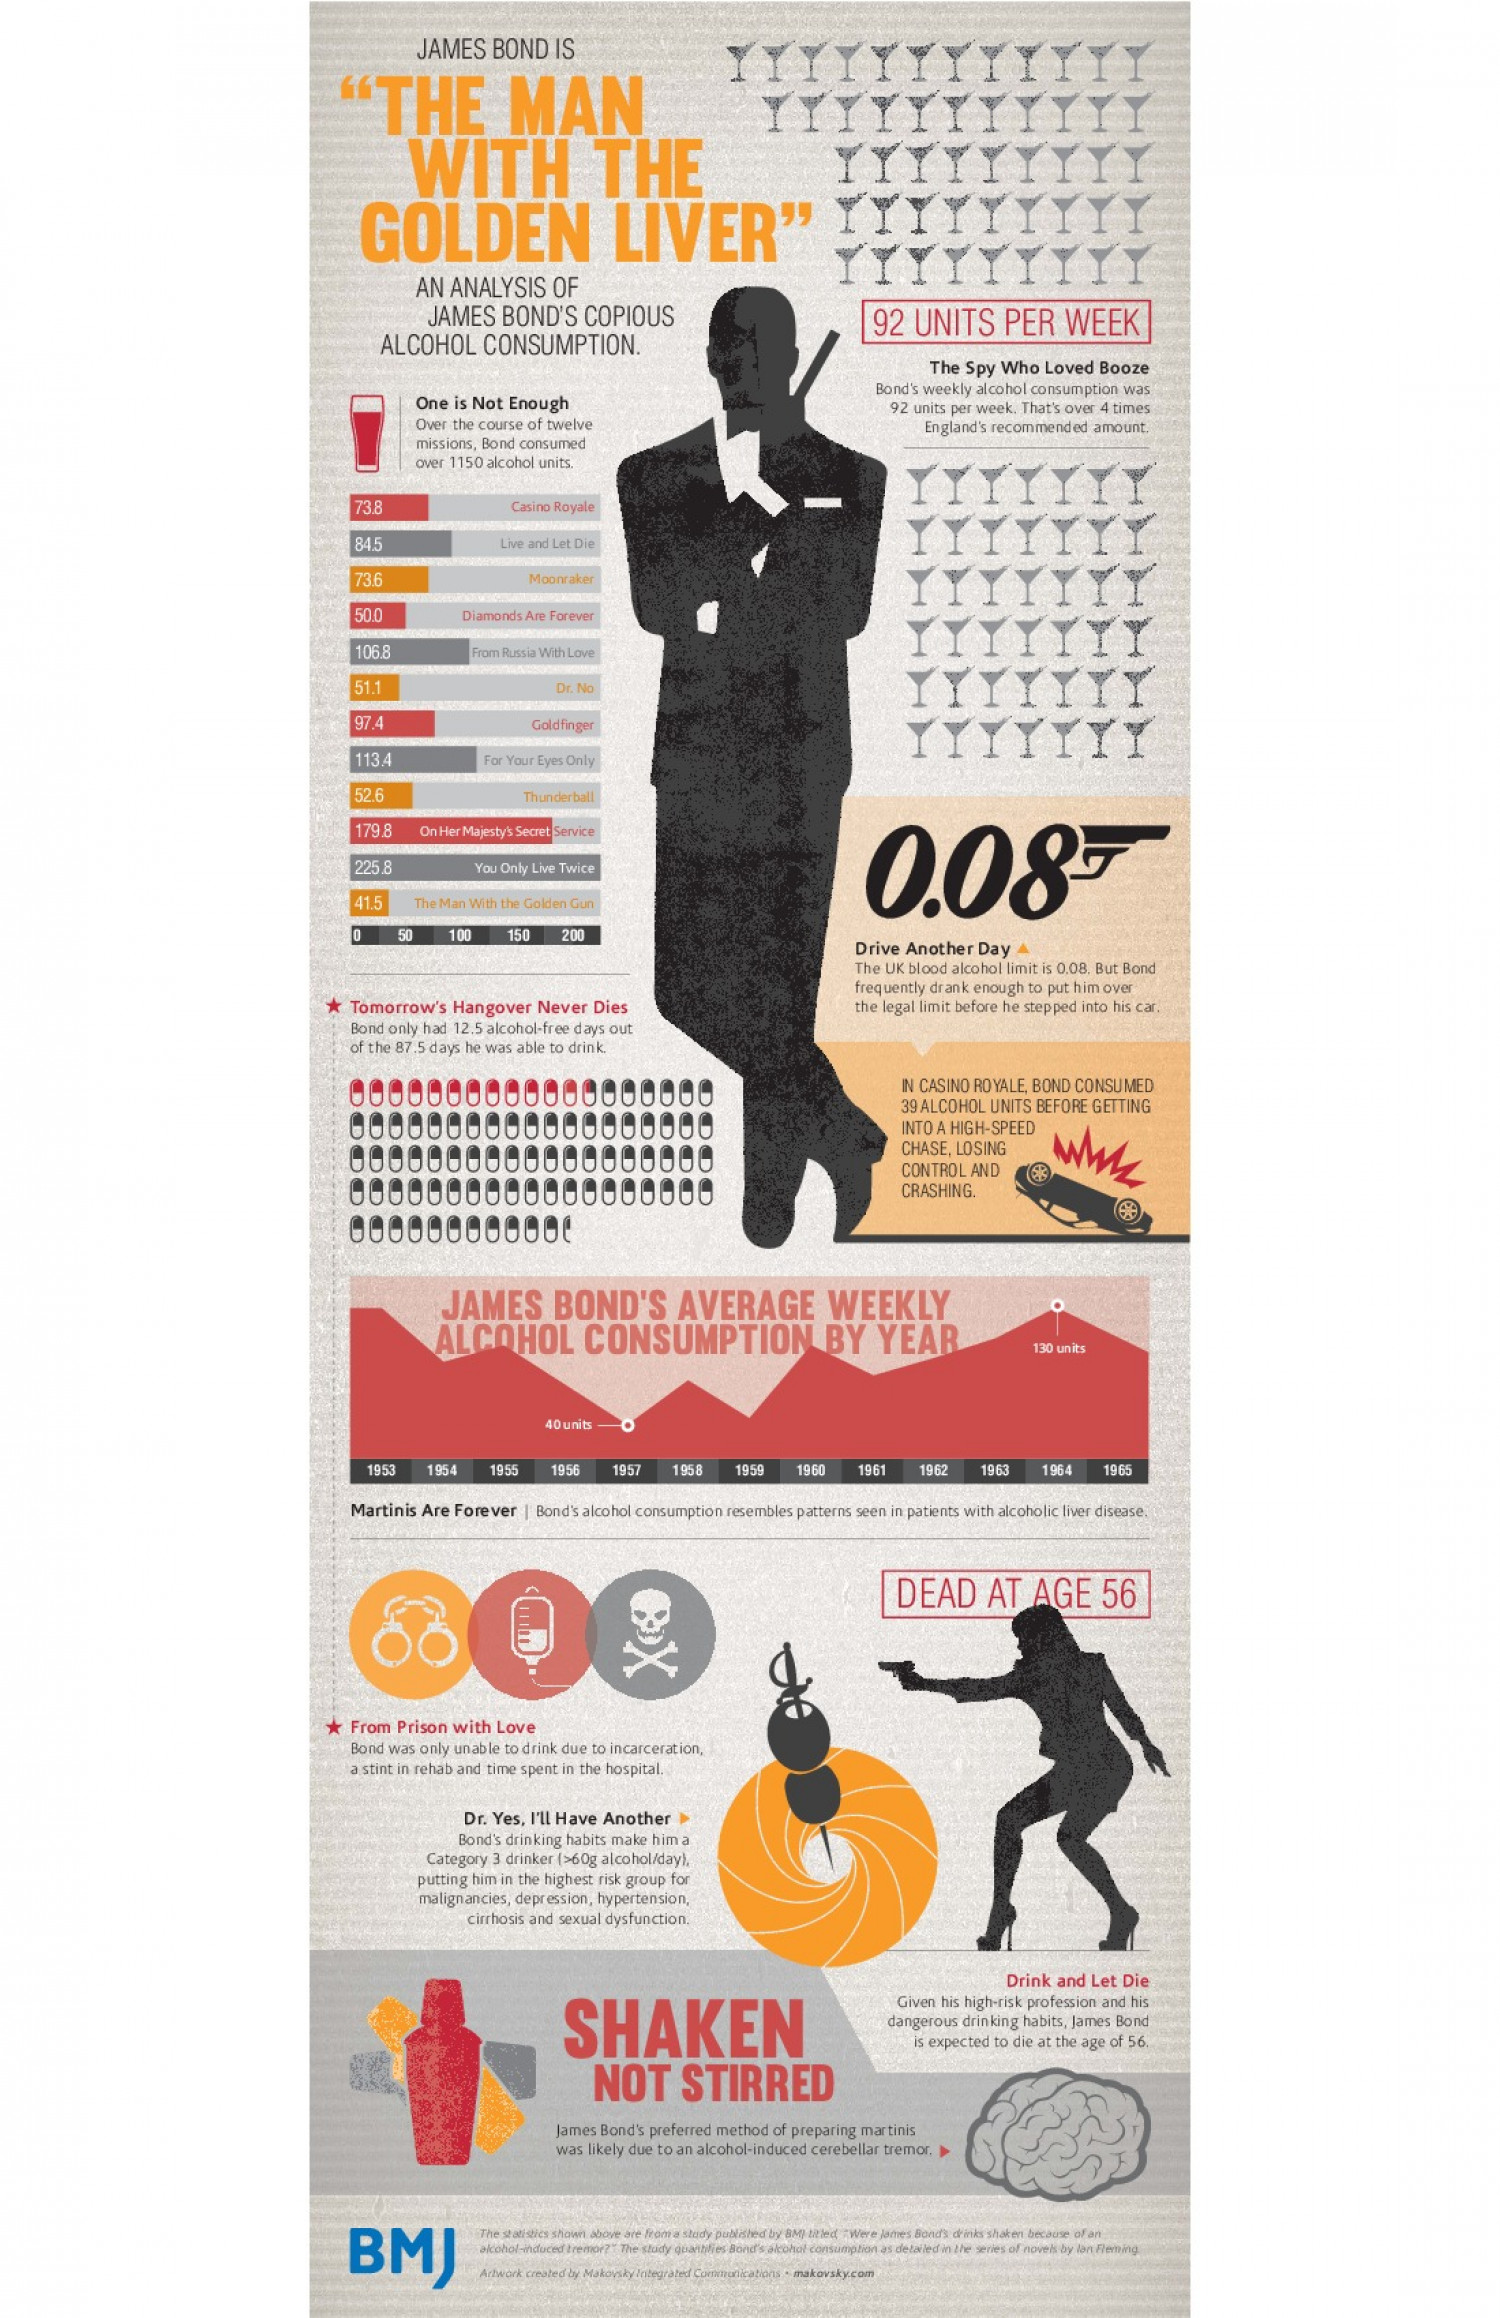 Title: The Man With the Golden Liver Infographic